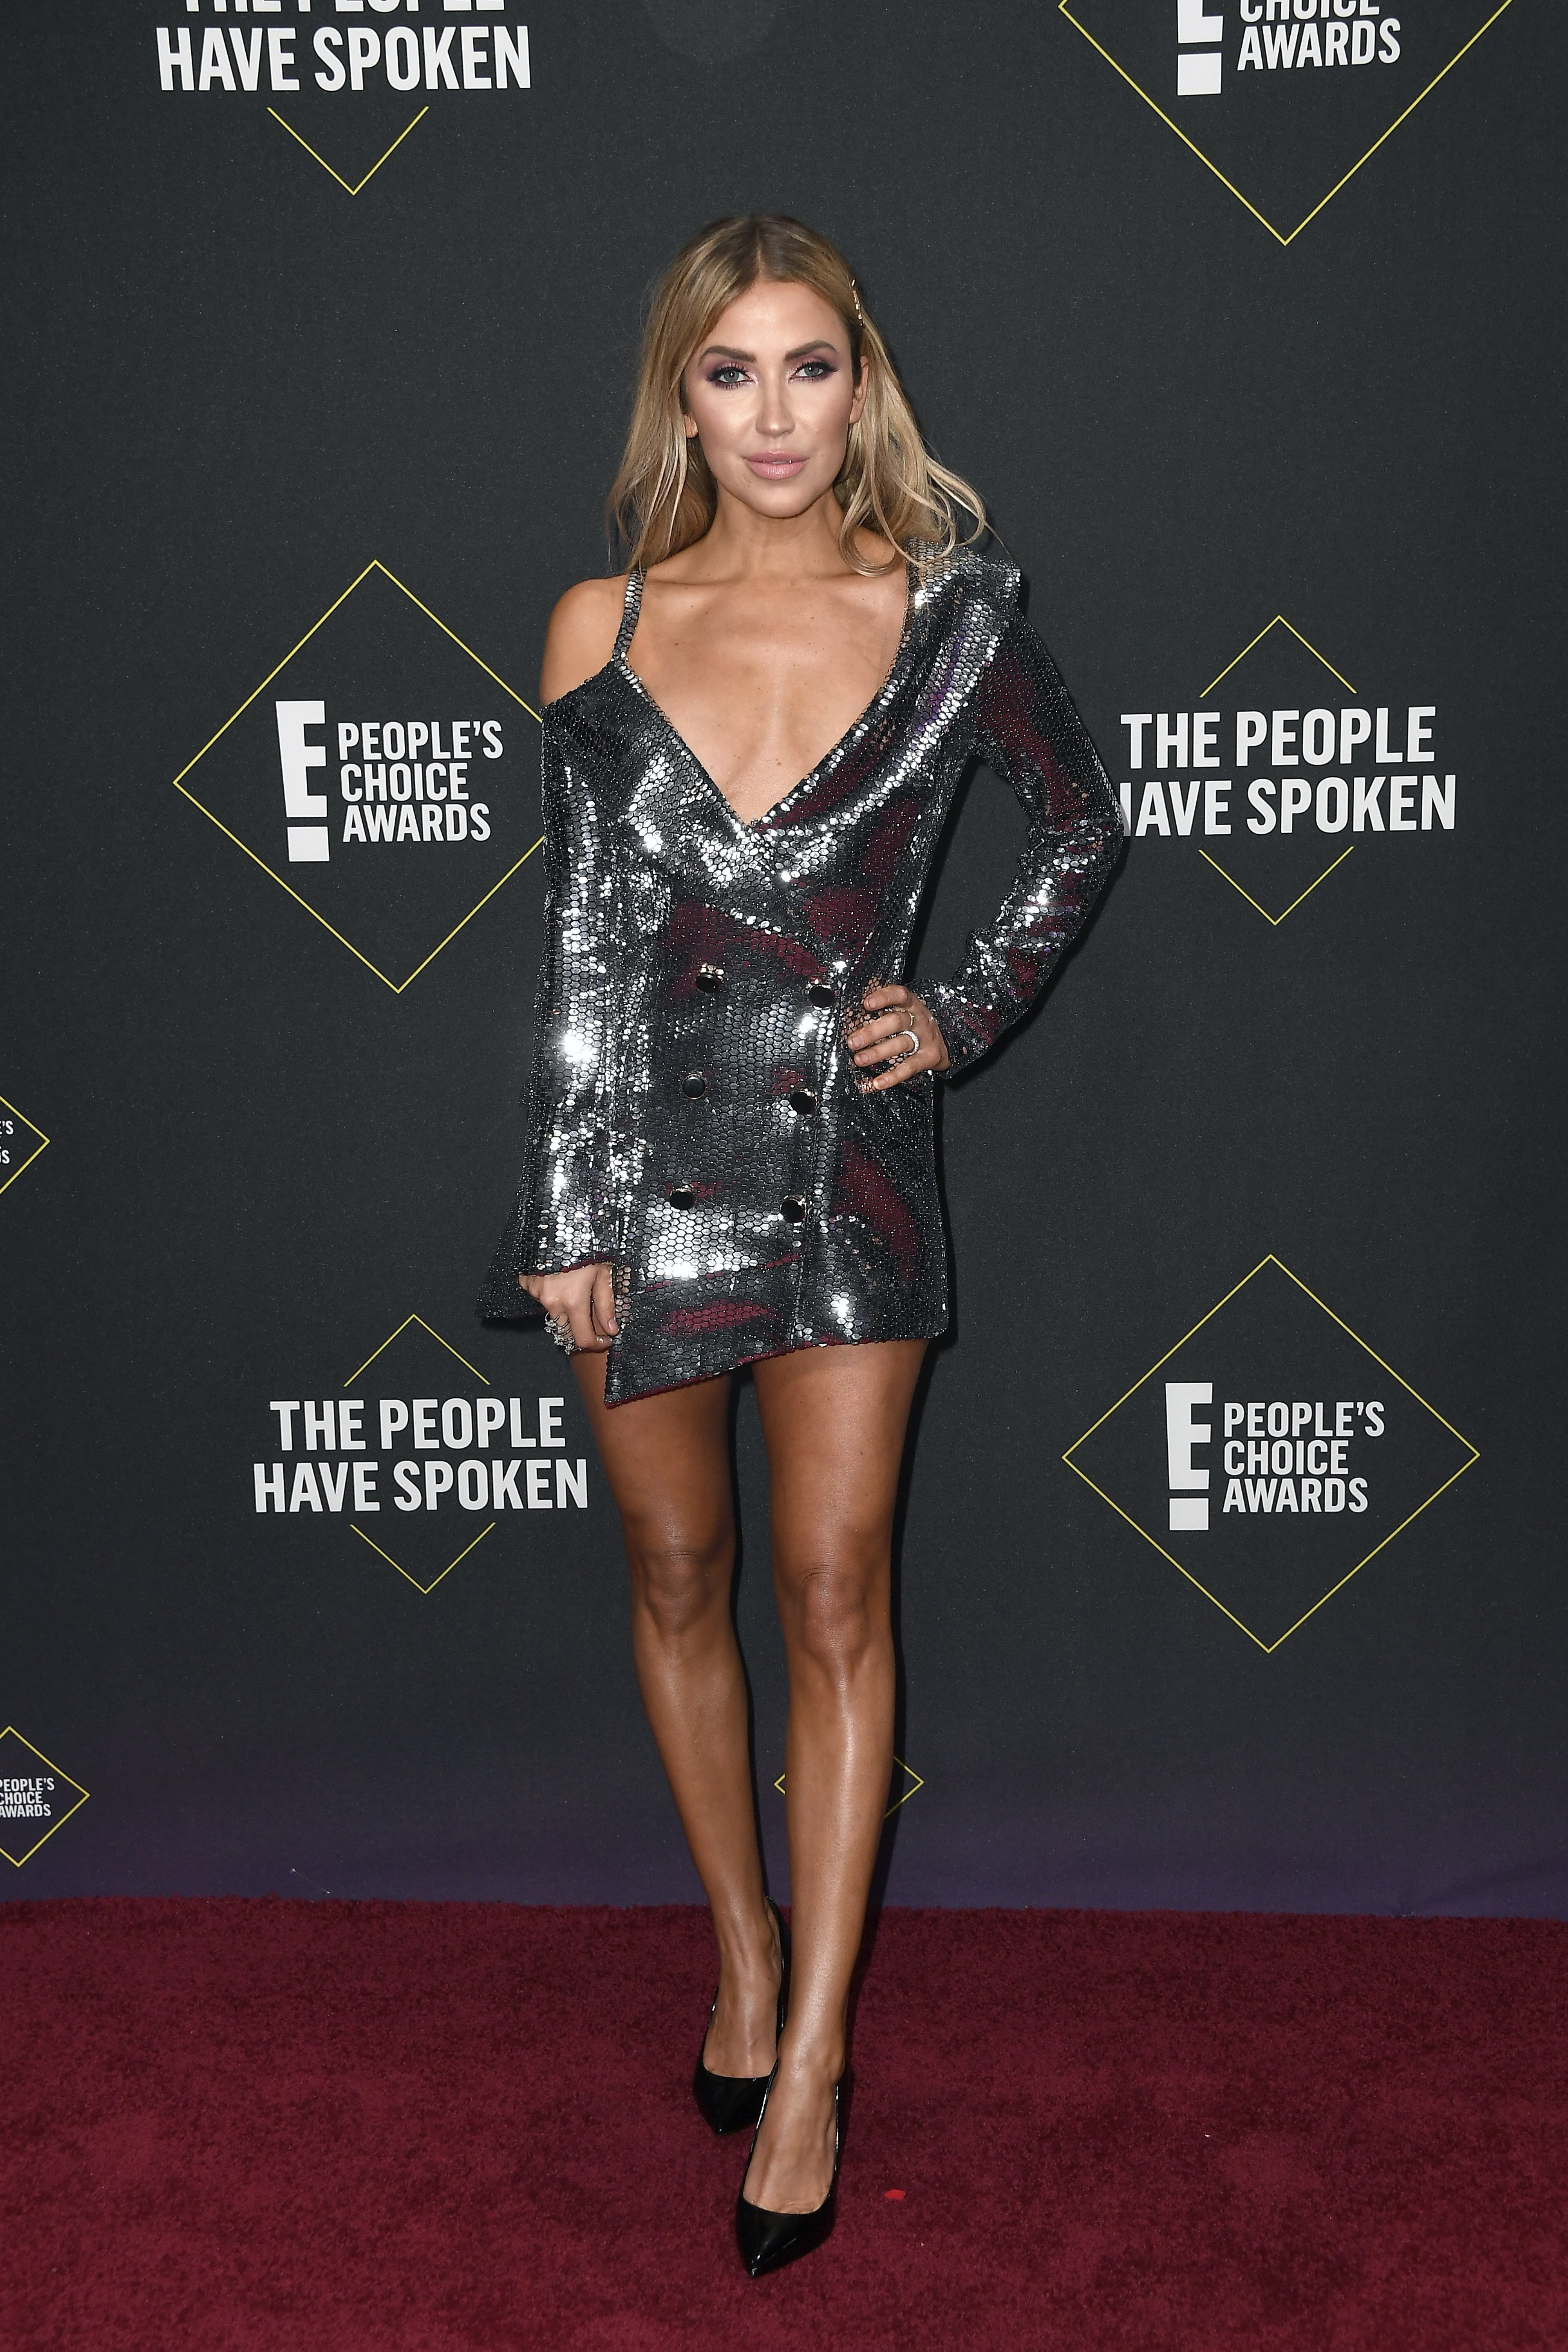 Kaitlyn Bristowe attends the 2019 E! People's Choice Awards on November 10, 2019. | Photo: Getty Images